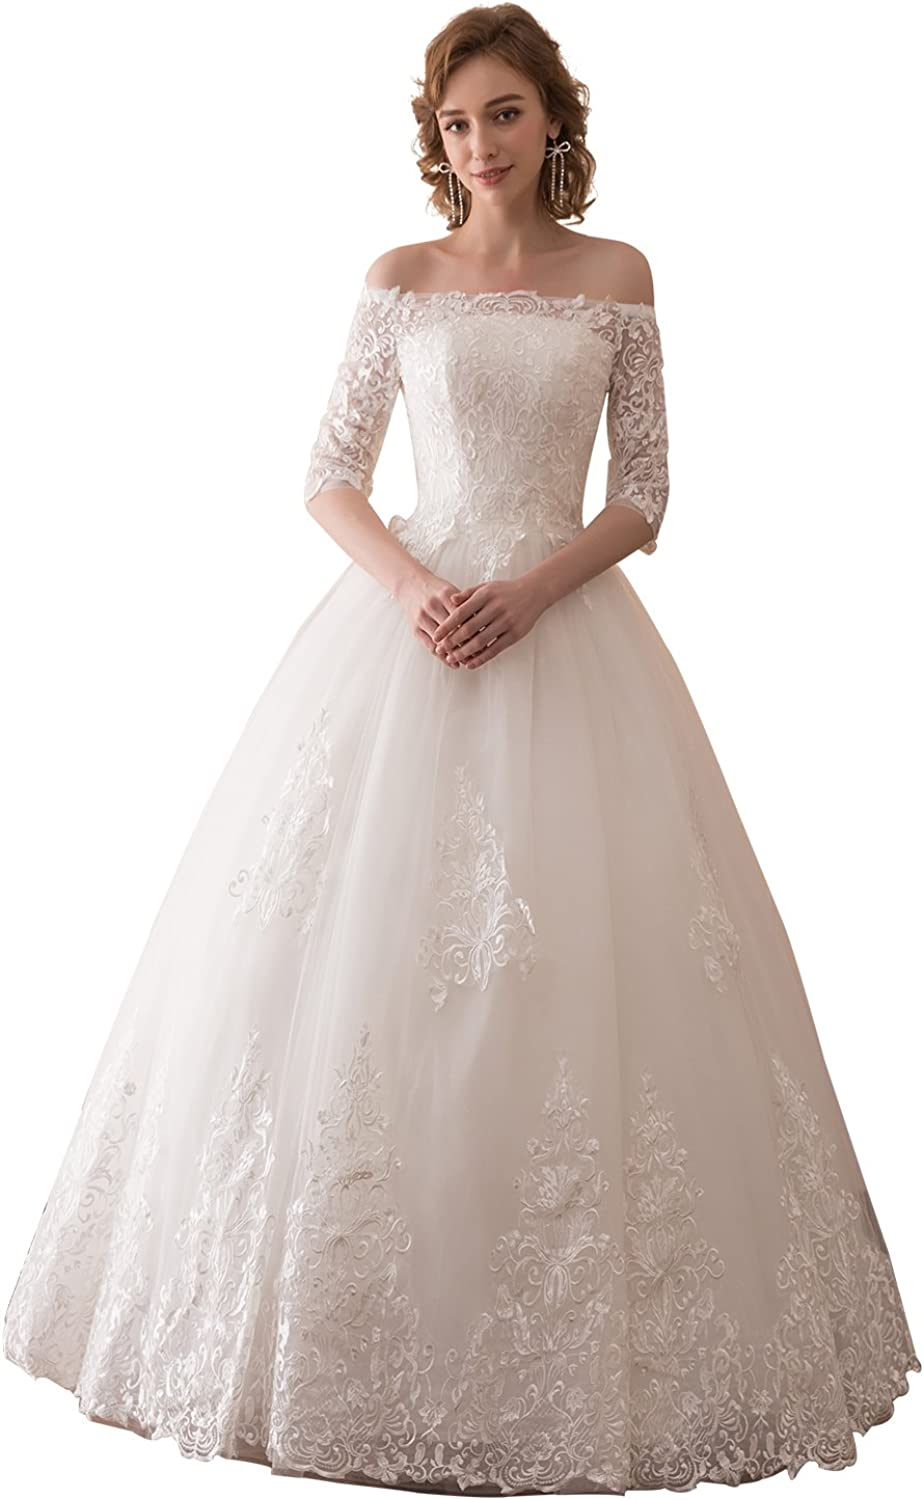 Epinkbridal Boat Neck Off Shoulder Wedding Dress with Sleeves Princess Ball Gown Bridal Gowns